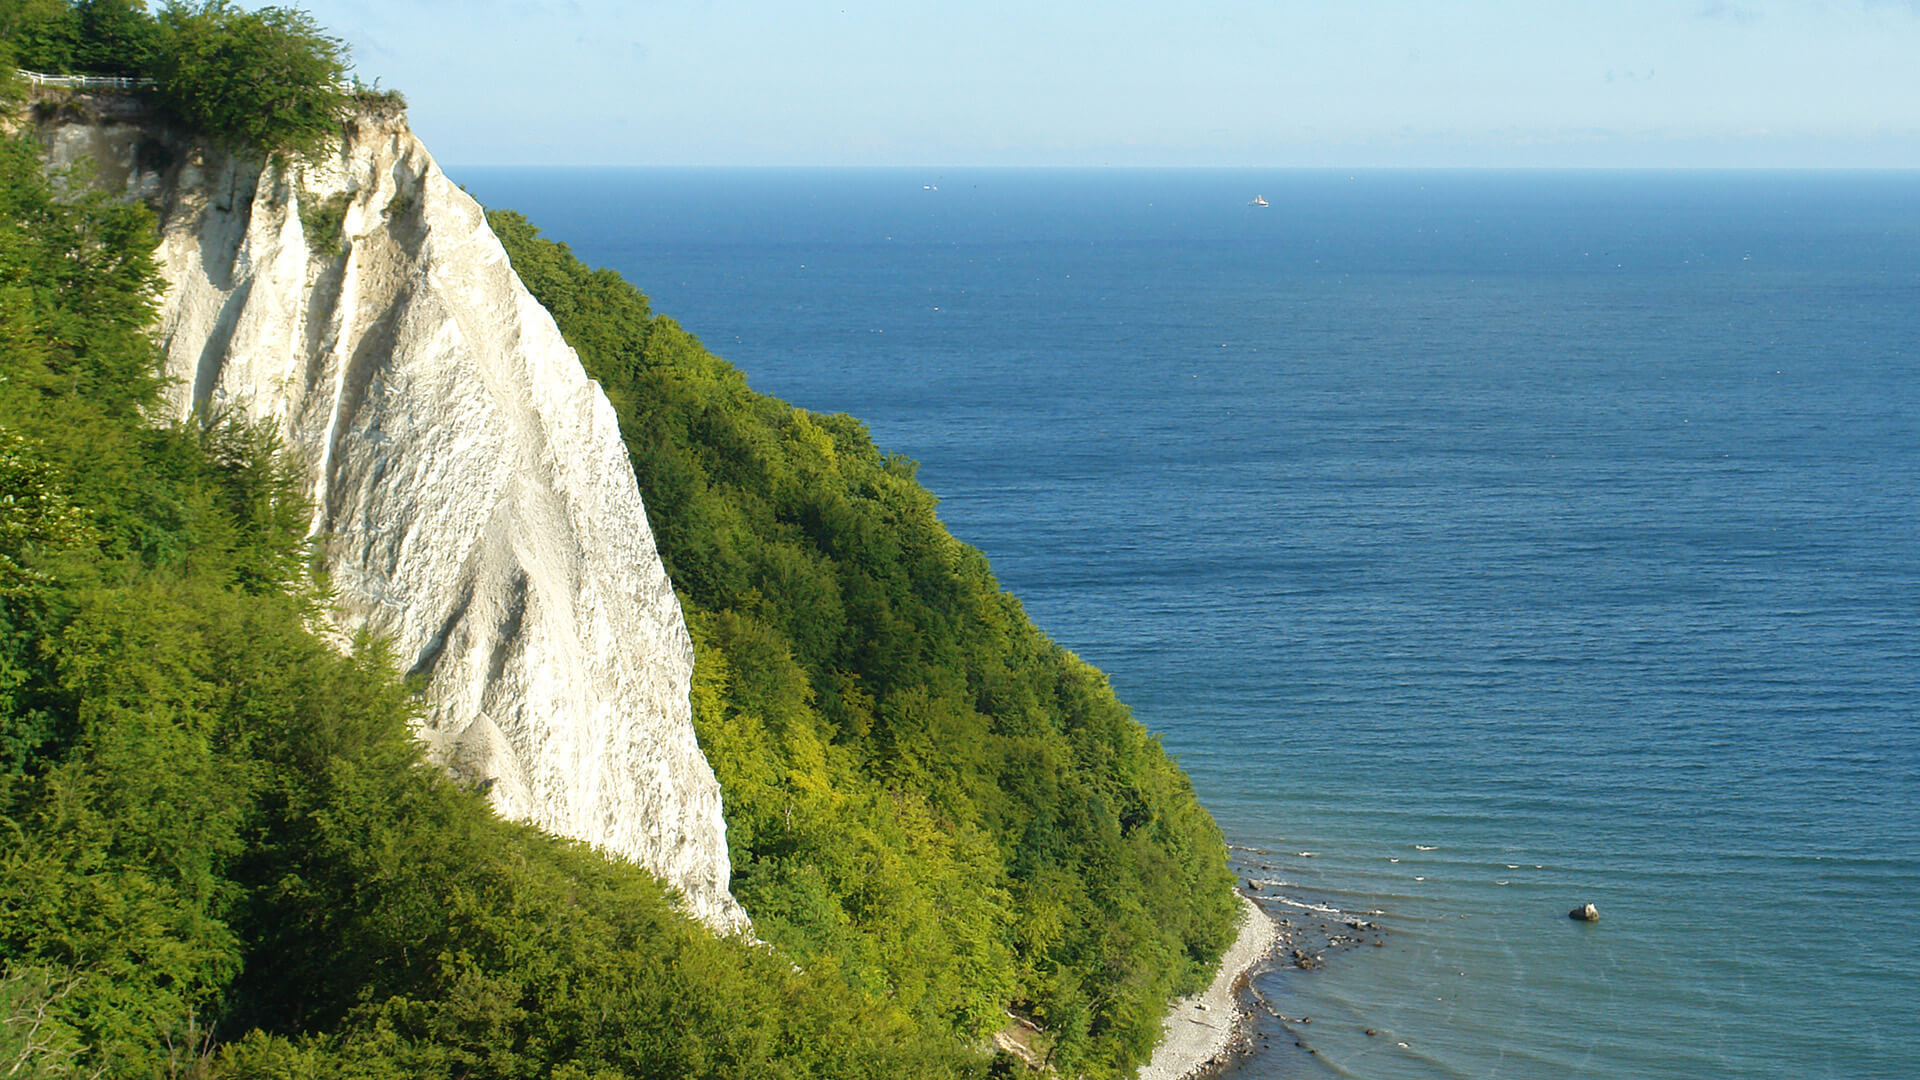 Nationalpark Jasmund: The landmark of Rügen - the 'Königsstuhl'